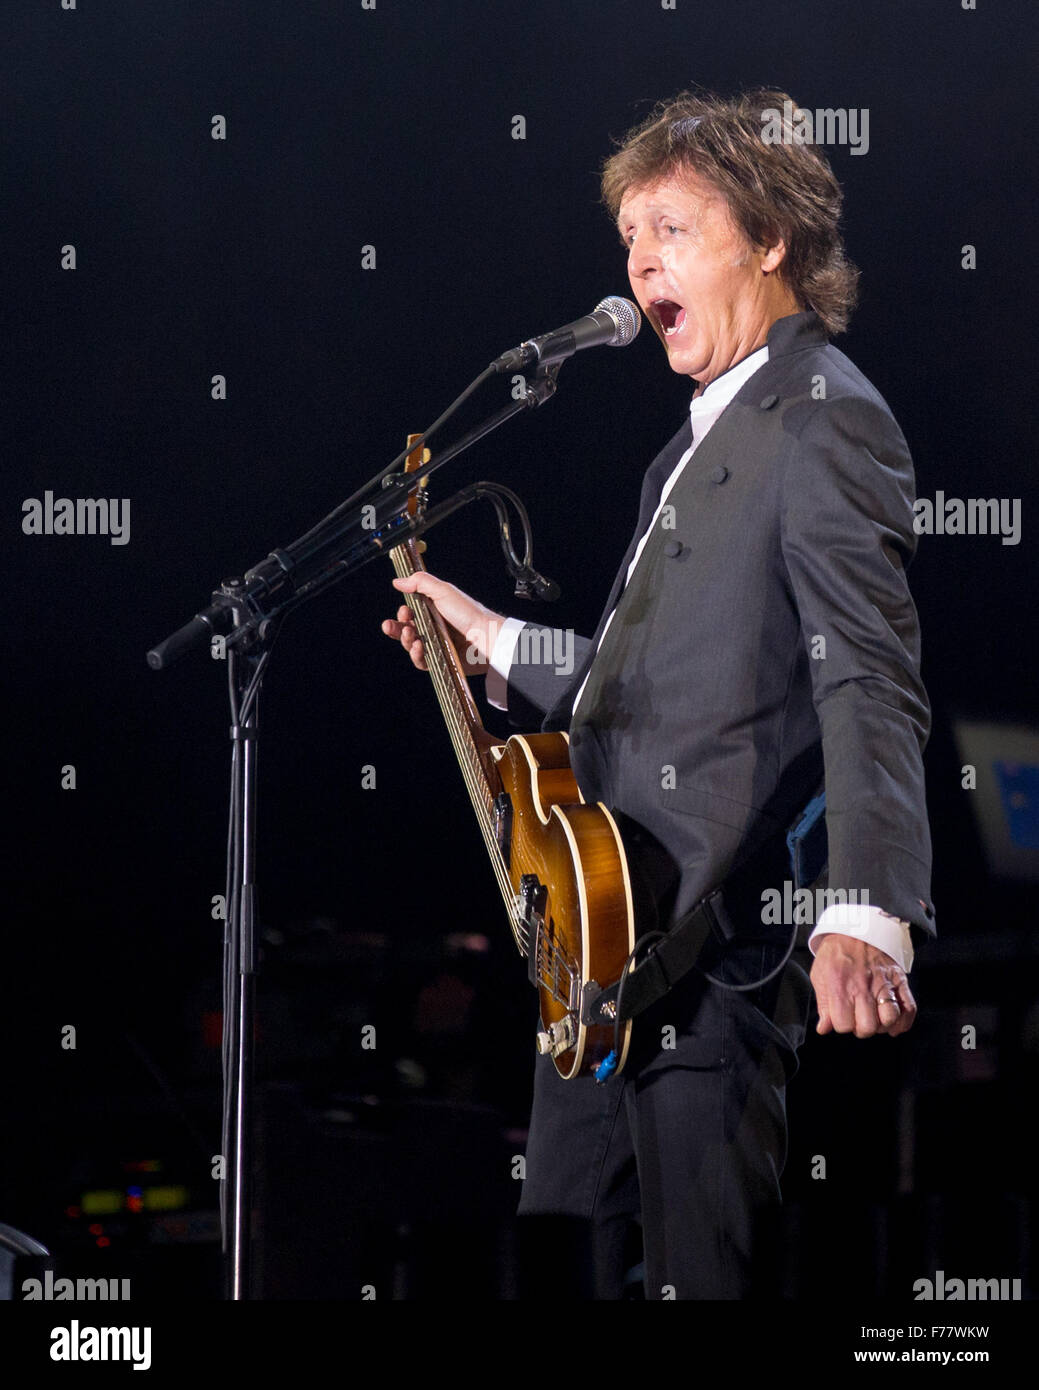 Dover, Deleware, USA. 19th June, 2015. Legendary musician Sir PAUL MCCARTNEY performs live on stage at the Firely - Stock Image